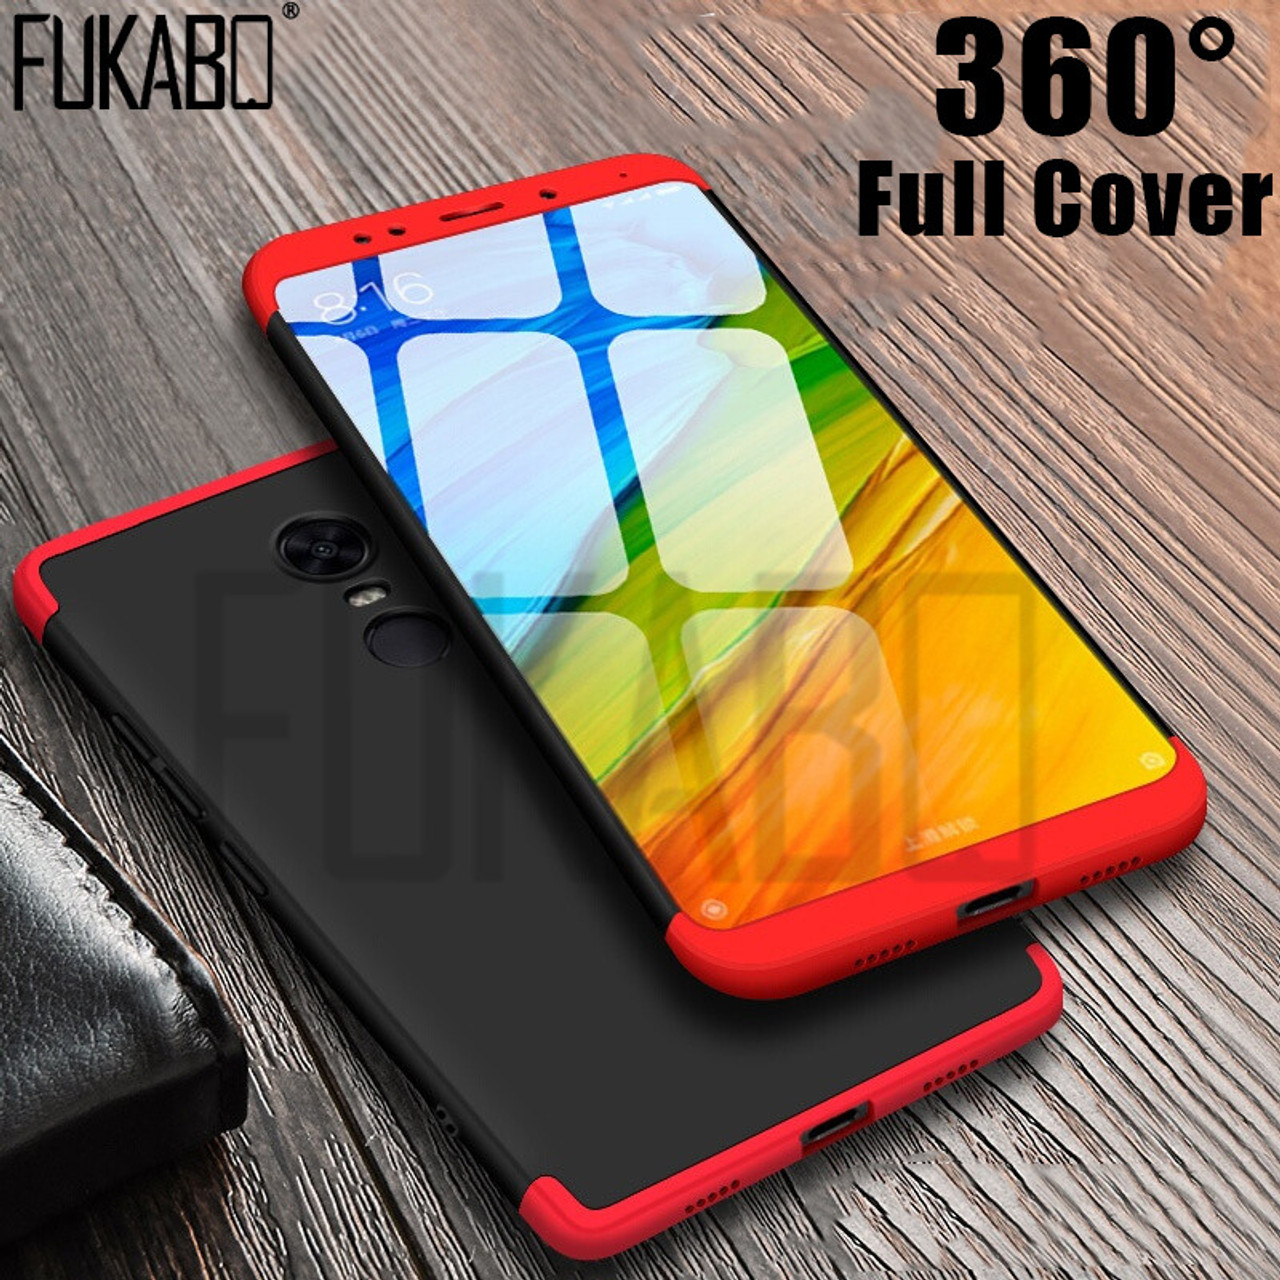 fca462e2168 360 degrees Full Cover Case For Xiaomi Redmi Note 4X Note 4 Global version hard  Back ...